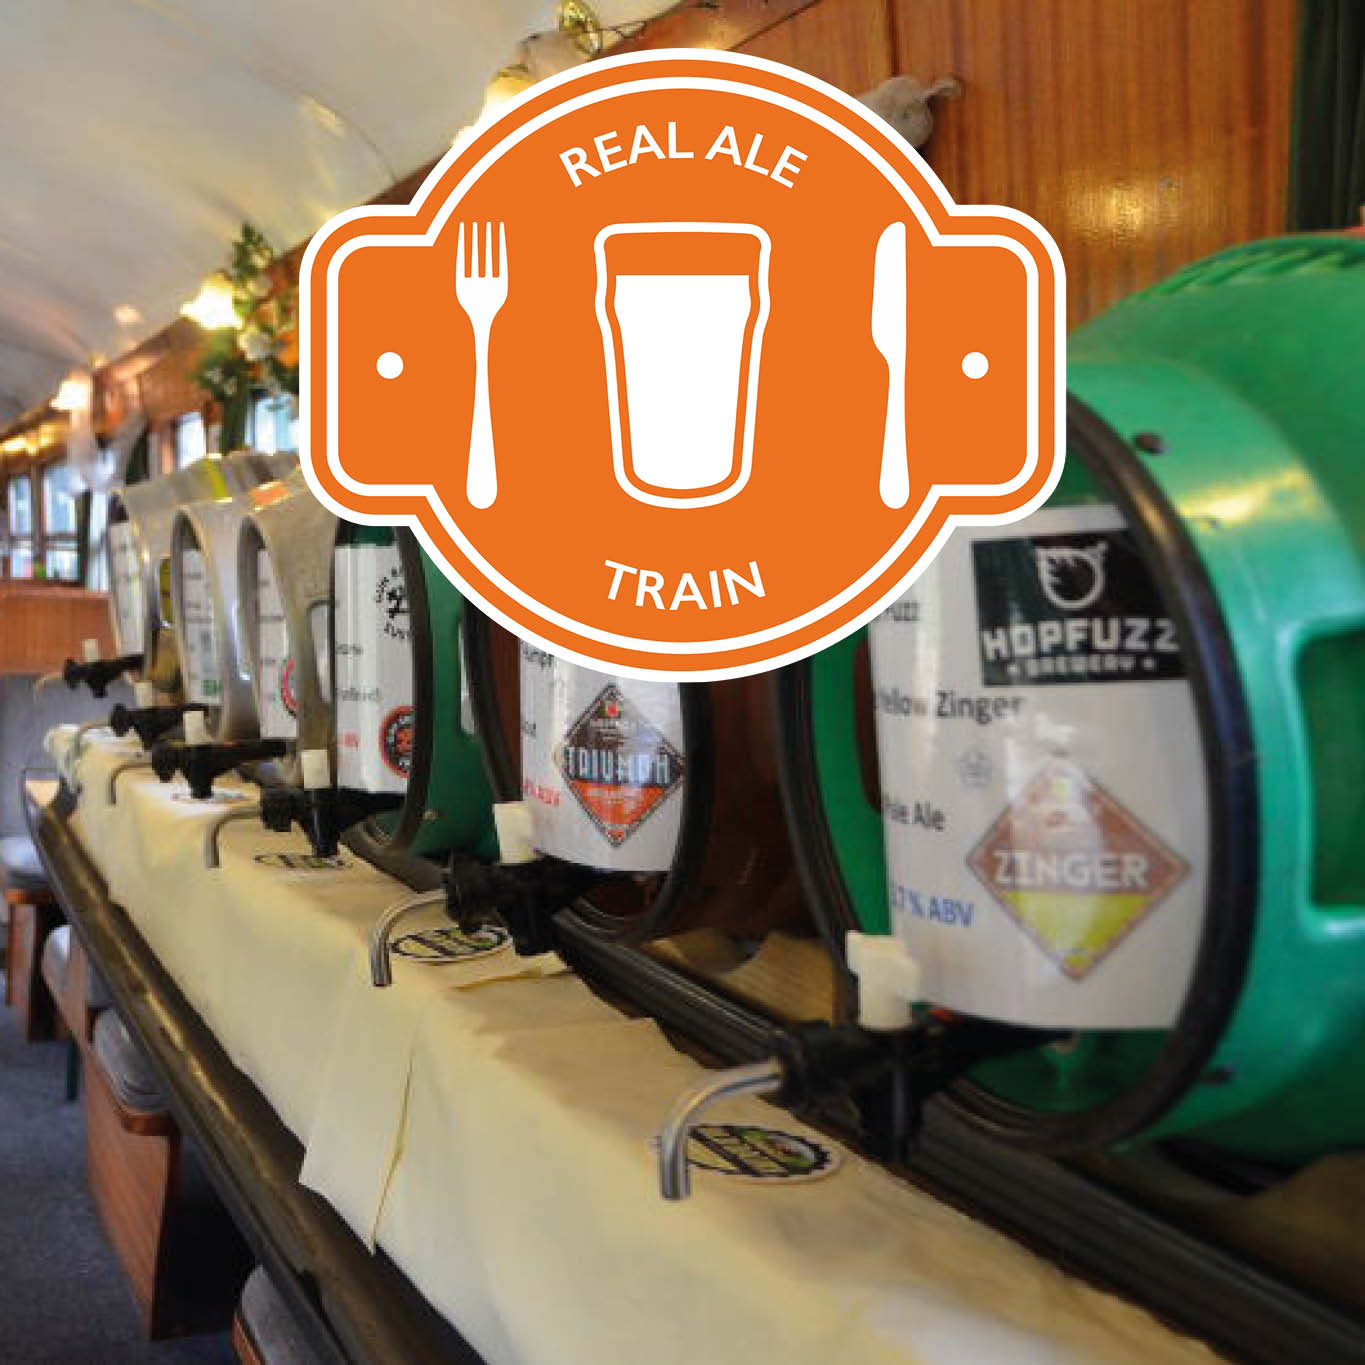 Image of real ales on-board a train carriage